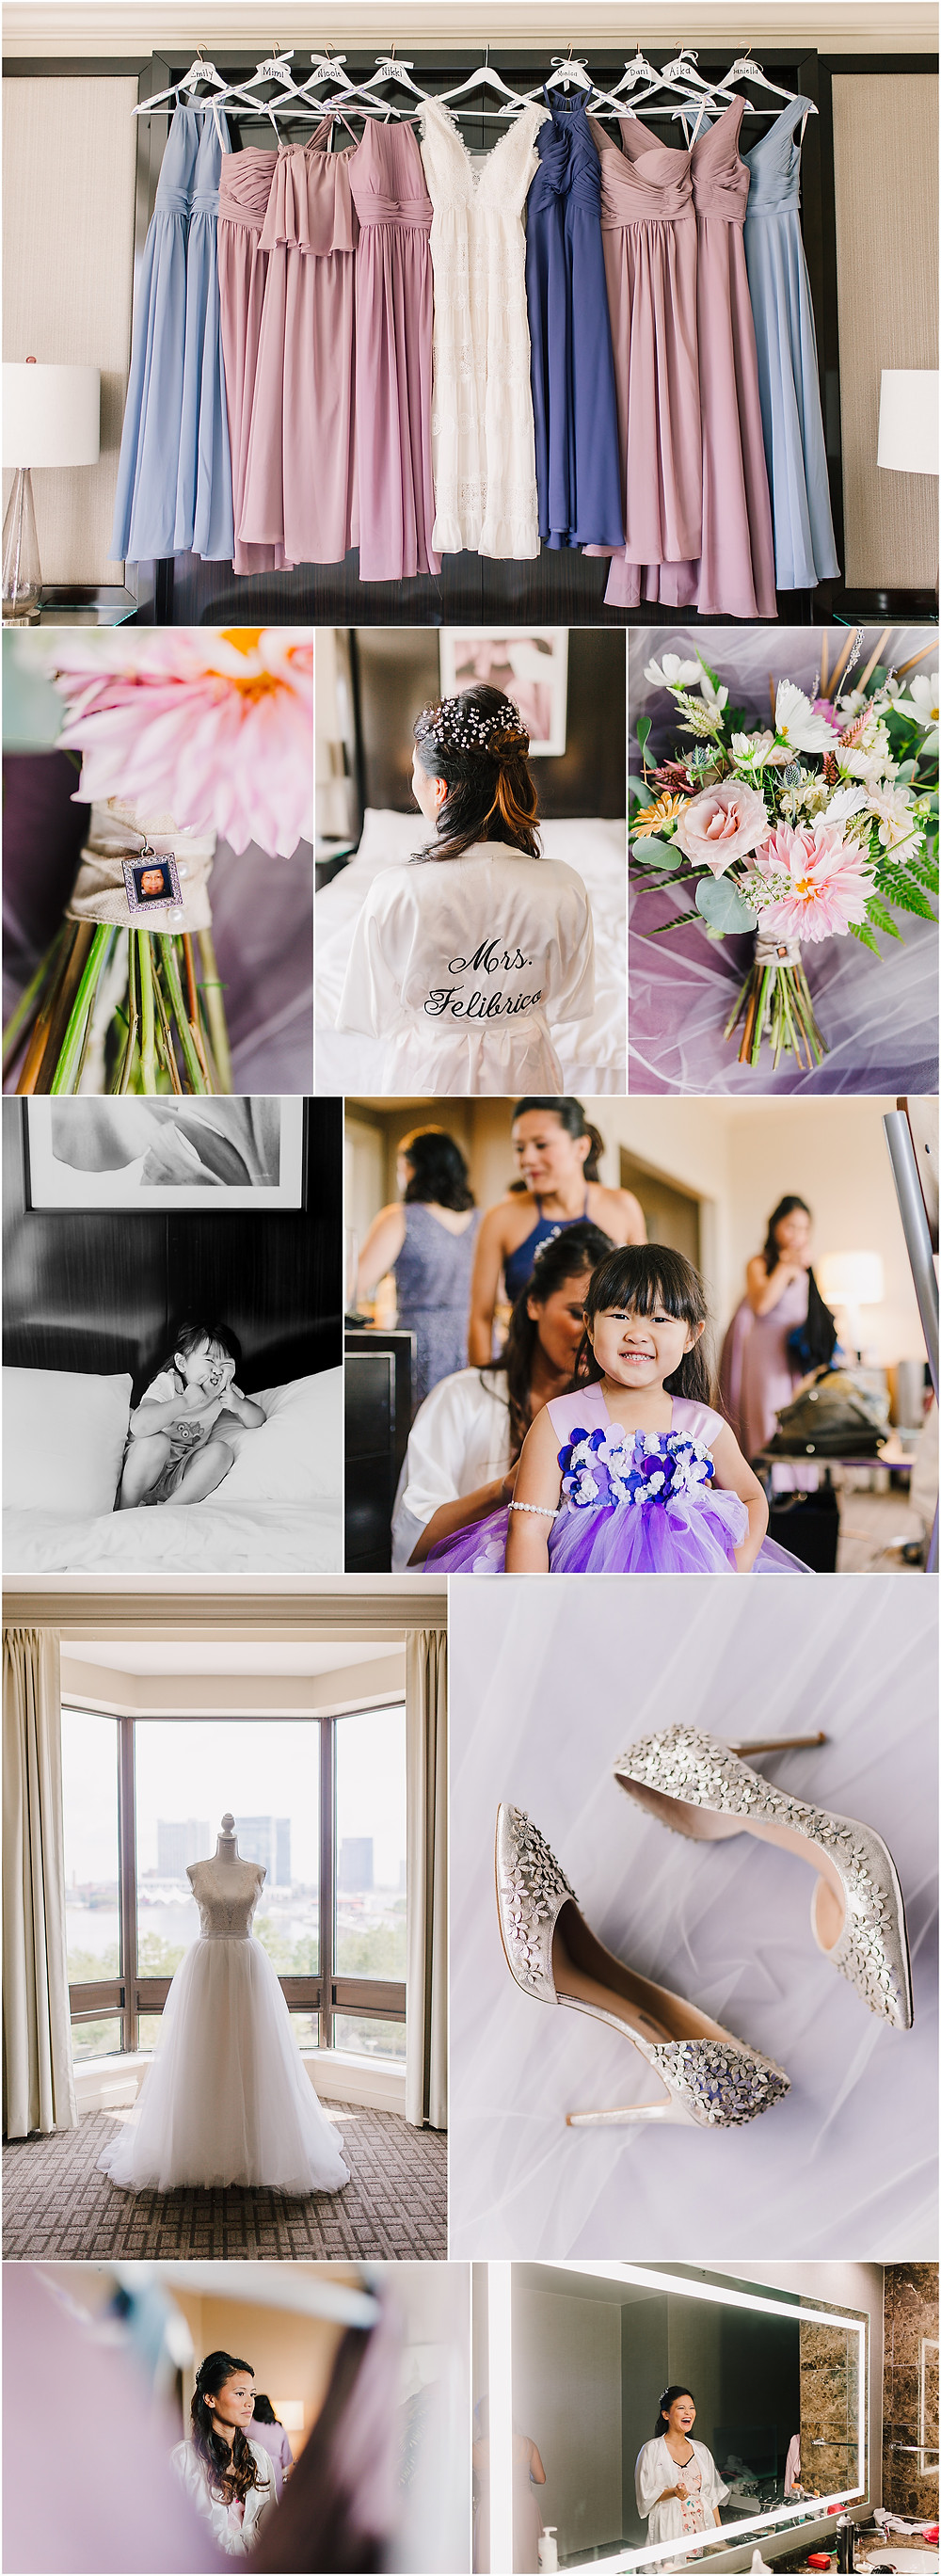 Getting Ready - Royal Sonesta Baltimore Hotel - Baltimore Wedding Photographer